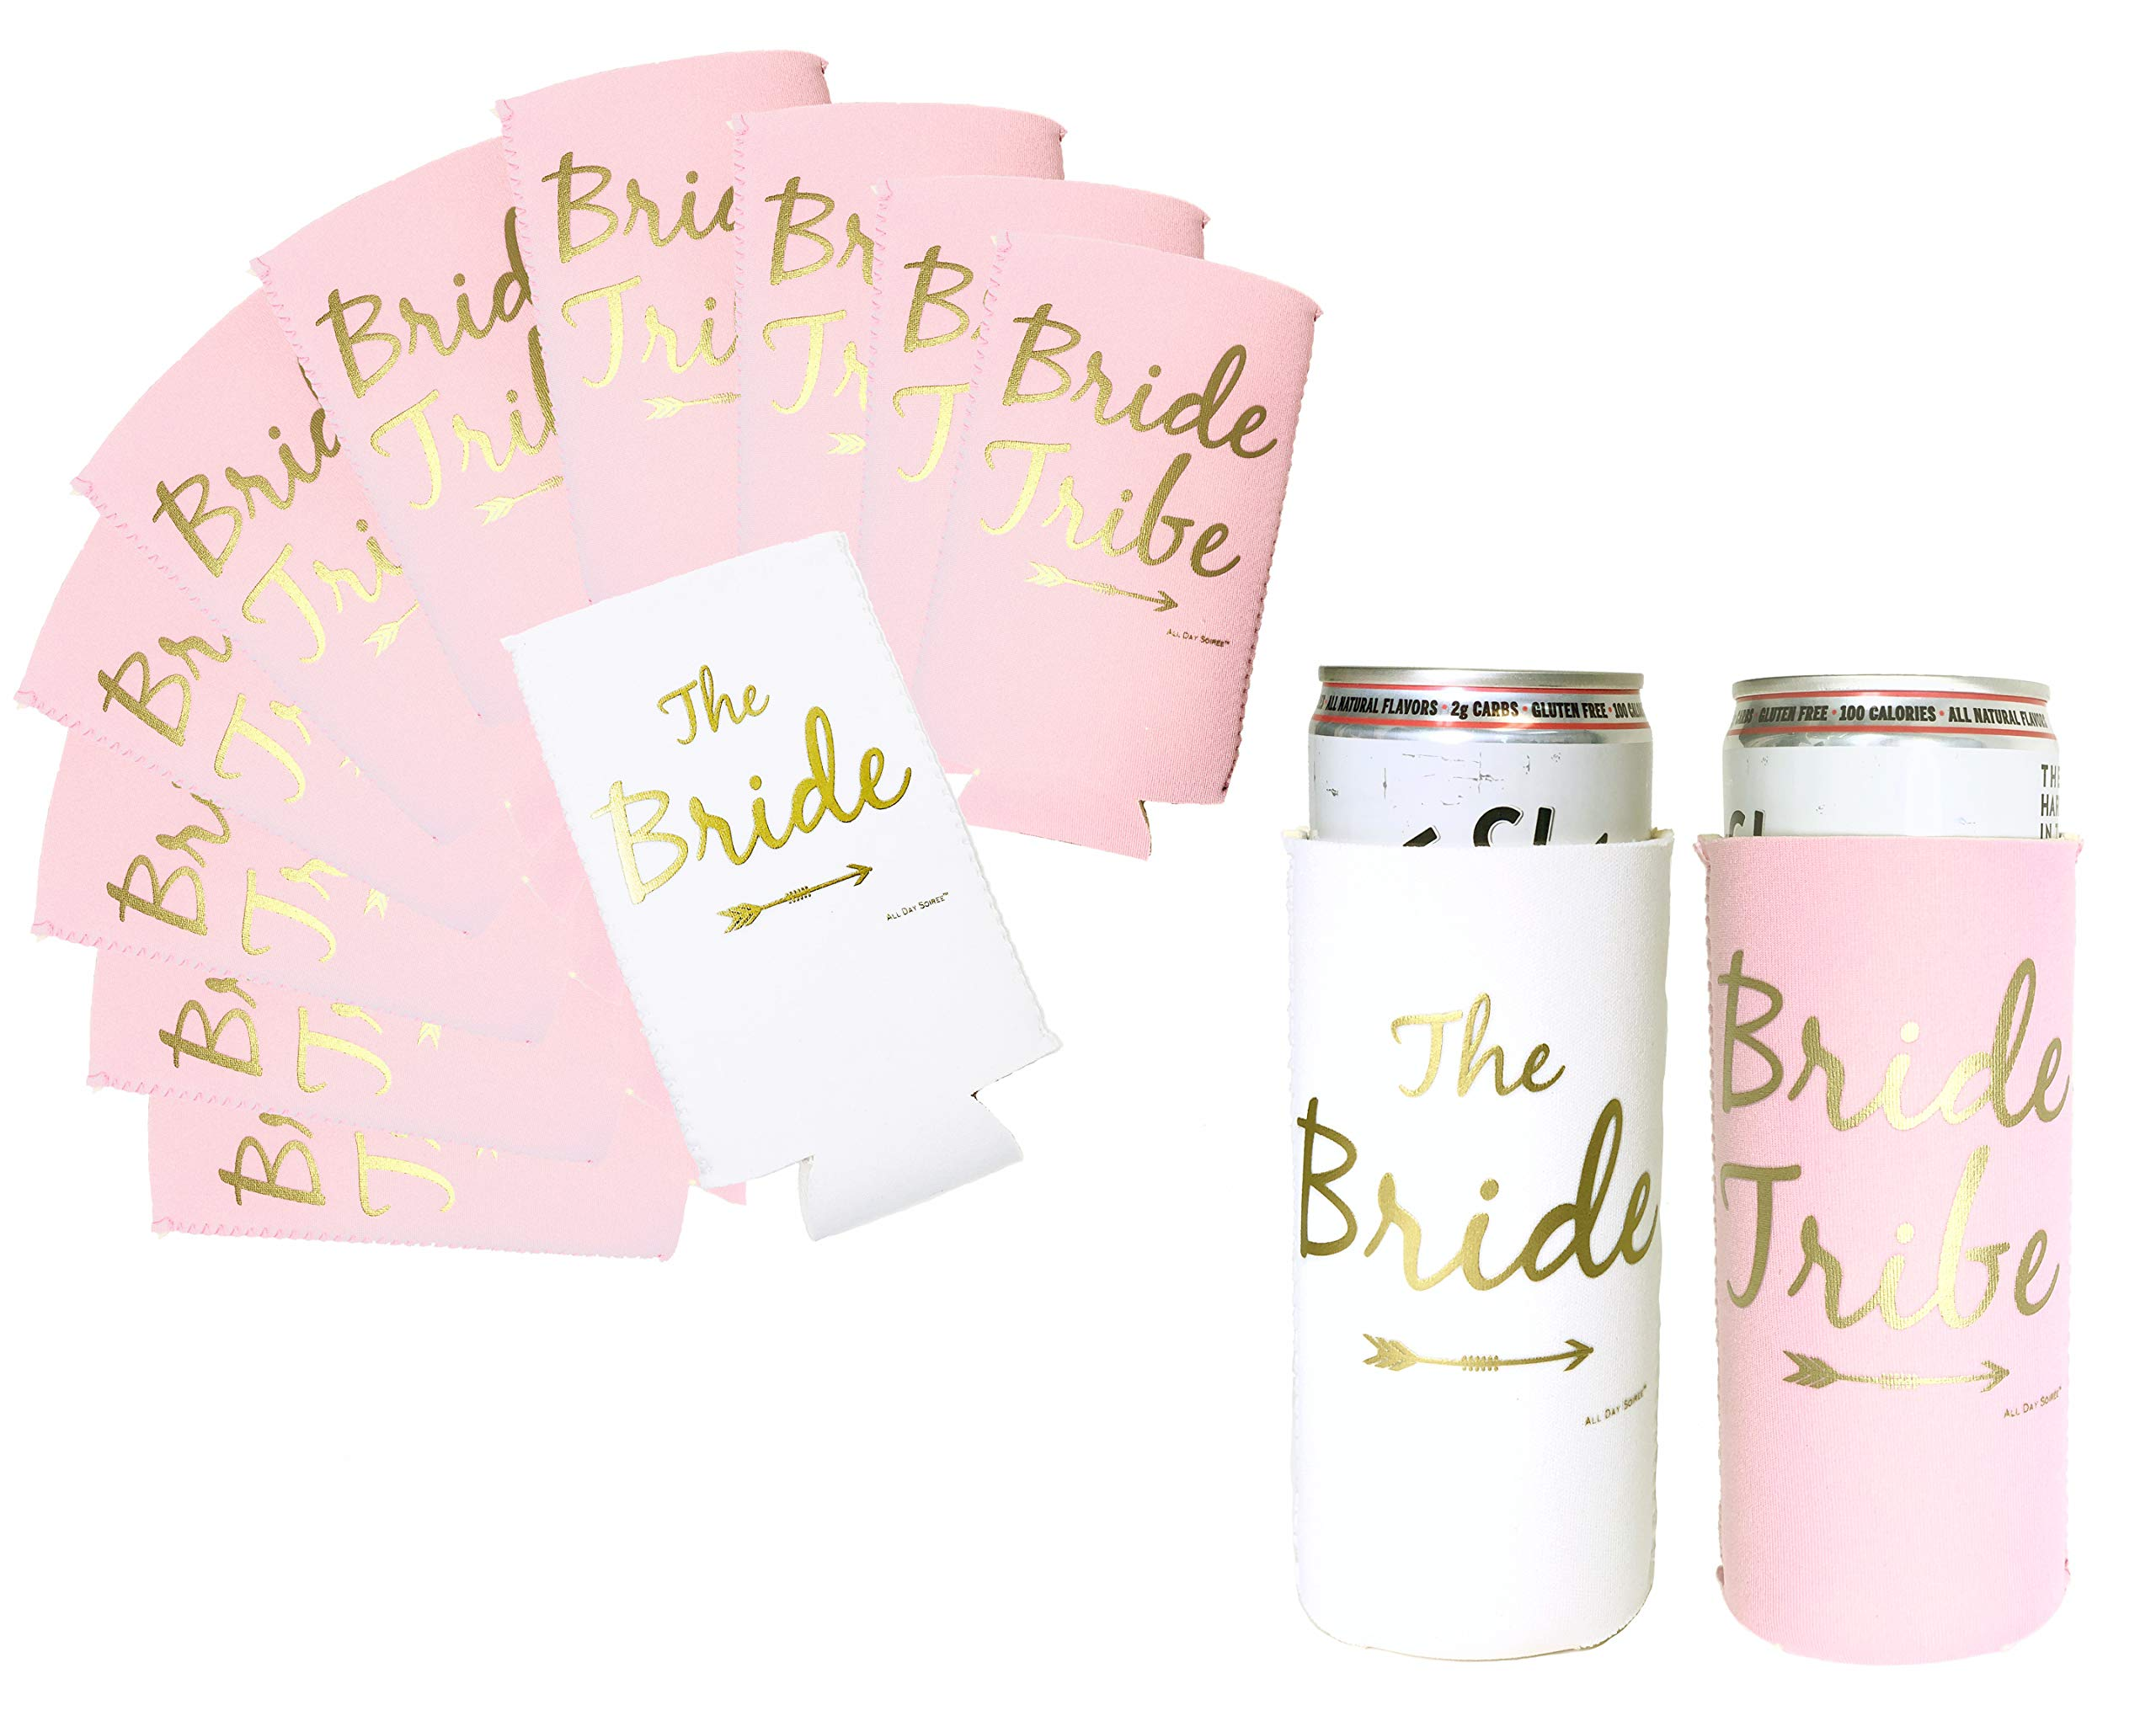 Bride Tribe Bachelorette Party Skinny Can Sleeves - 11 Pack Insulated Neoprene Drink Holders, Fit Slim Spiked Hard Seltzer Beer Cans | 10 Pink 1 White | Bridal Shower Decorations, Supplies, Favors